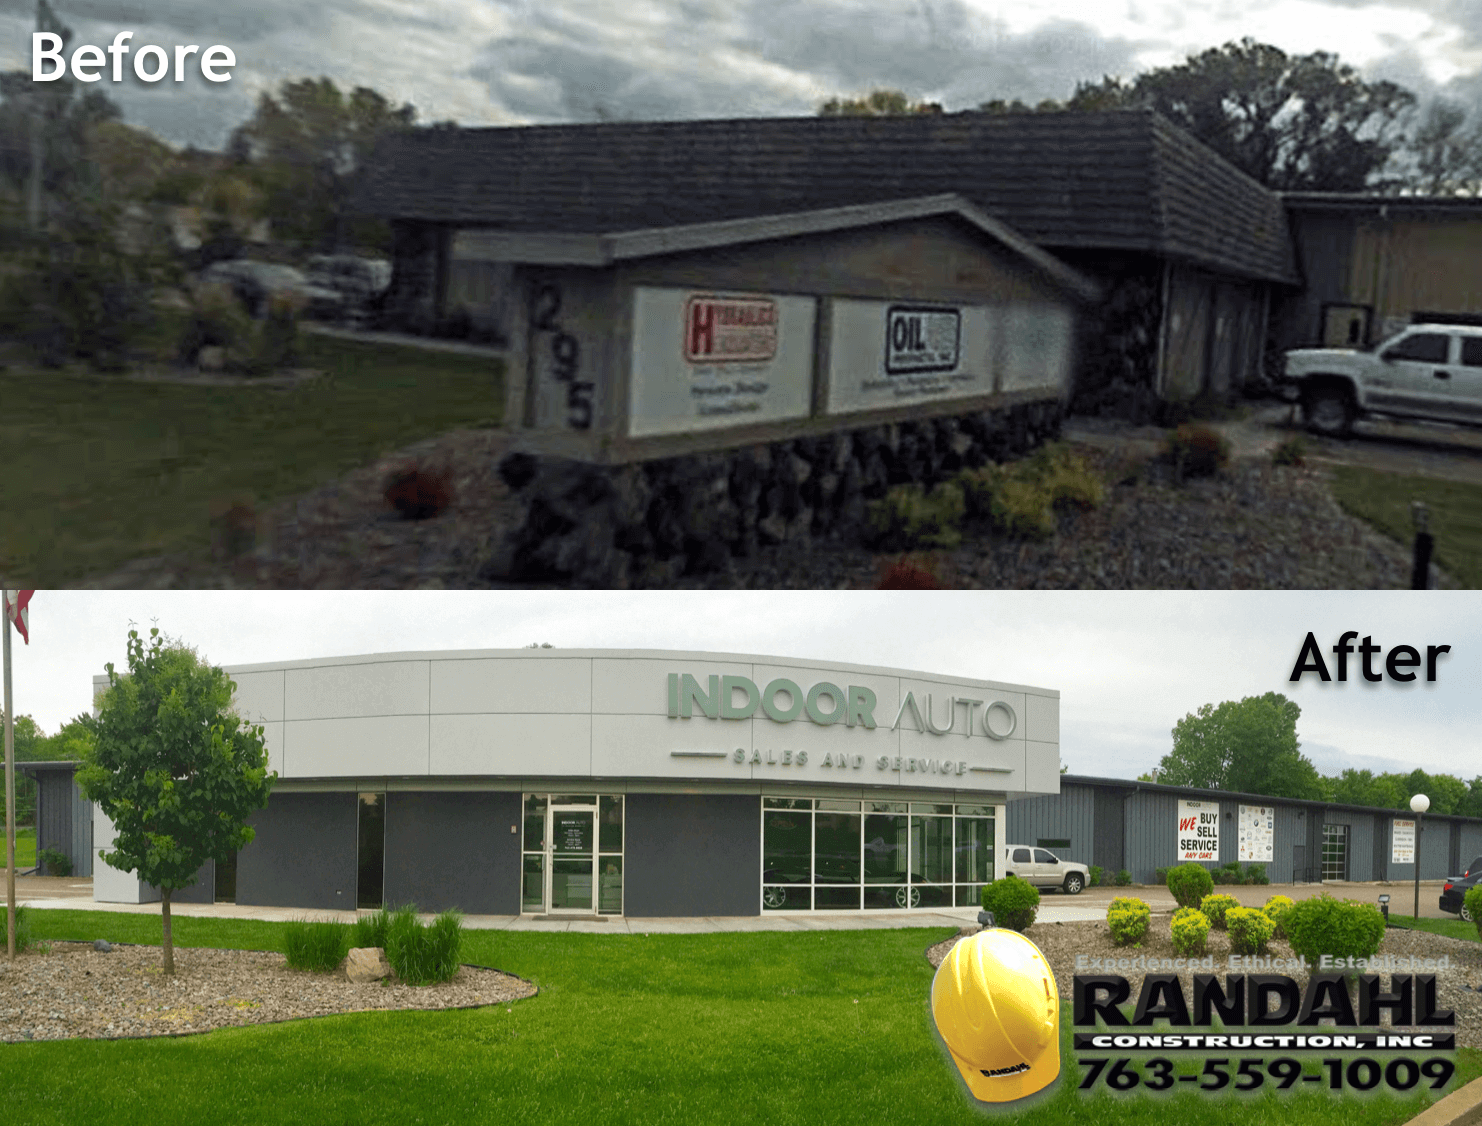 Commercial Remodeling Before After